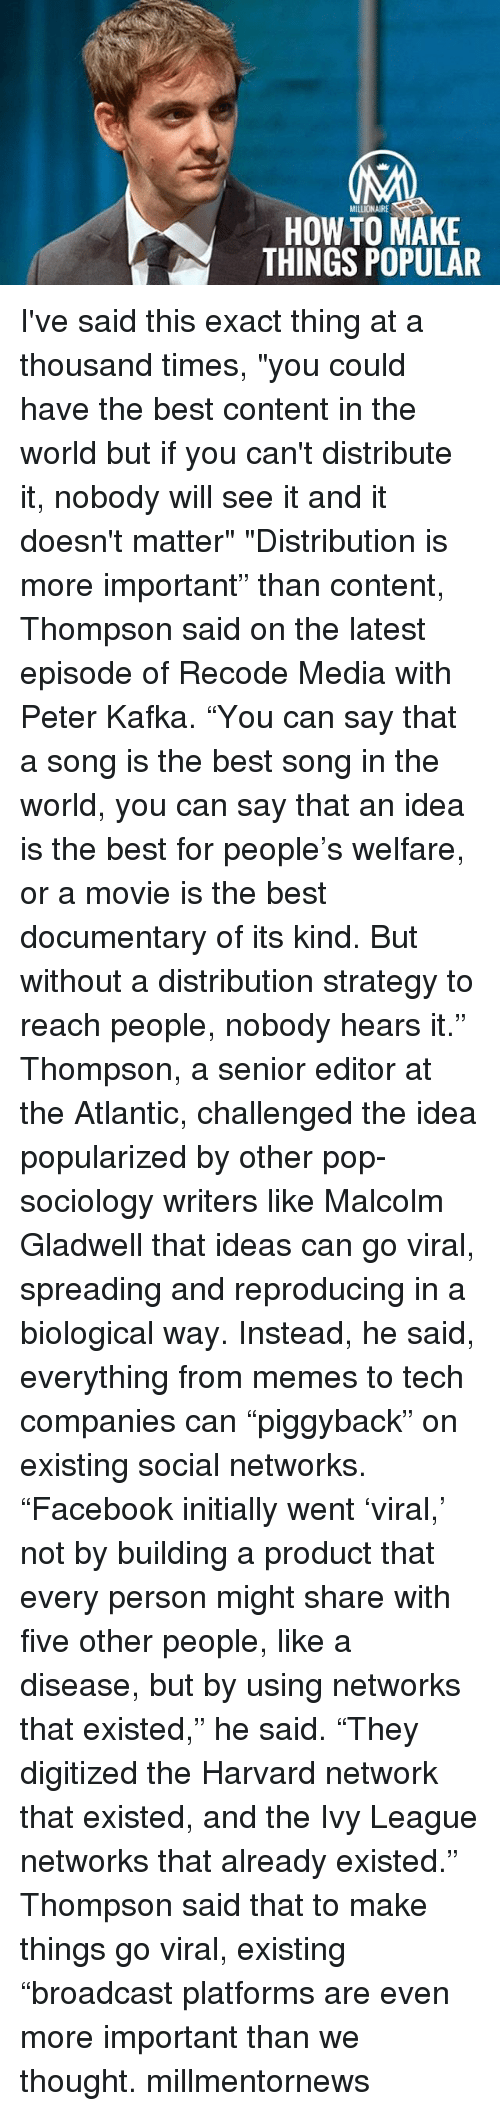 """Memes, Sociology, and 🤖: MILLIONAIRE  HOW TO MAKE  THINGS POPULAR I've said this exact thing at a thousand times, """"you could have the best content in the world but if you can't distribute it, nobody will see it and it doesn't matter"""" """"Distribution is more important"""" than content, Thompson said on the latest episode of Recode Media with Peter Kafka. """"You can say that a song is the best song in the world, you can say that an idea is the best for people's welfare, or a movie is the best documentary of its kind. But without a distribution strategy to reach people, nobody hears it."""" Thompson, a senior editor at the Atlantic, challenged the idea popularized by other pop-sociology writers like Malcolm Gladwell that ideas can go viral, spreading and reproducing in a biological way. Instead, he said, everything from memes to tech companies can """"piggyback"""" on existing social networks. """"Facebook initially went 'viral,' not by building a product that every person might share with five other people, like a disease, but by using networks that existed,"""" he said. """"They digitized the Harvard network that existed, and the Ivy League networks that already existed."""" Thompson said that to make things go viral, existing """"broadcast platforms are even more important than we thought. millmentornews"""